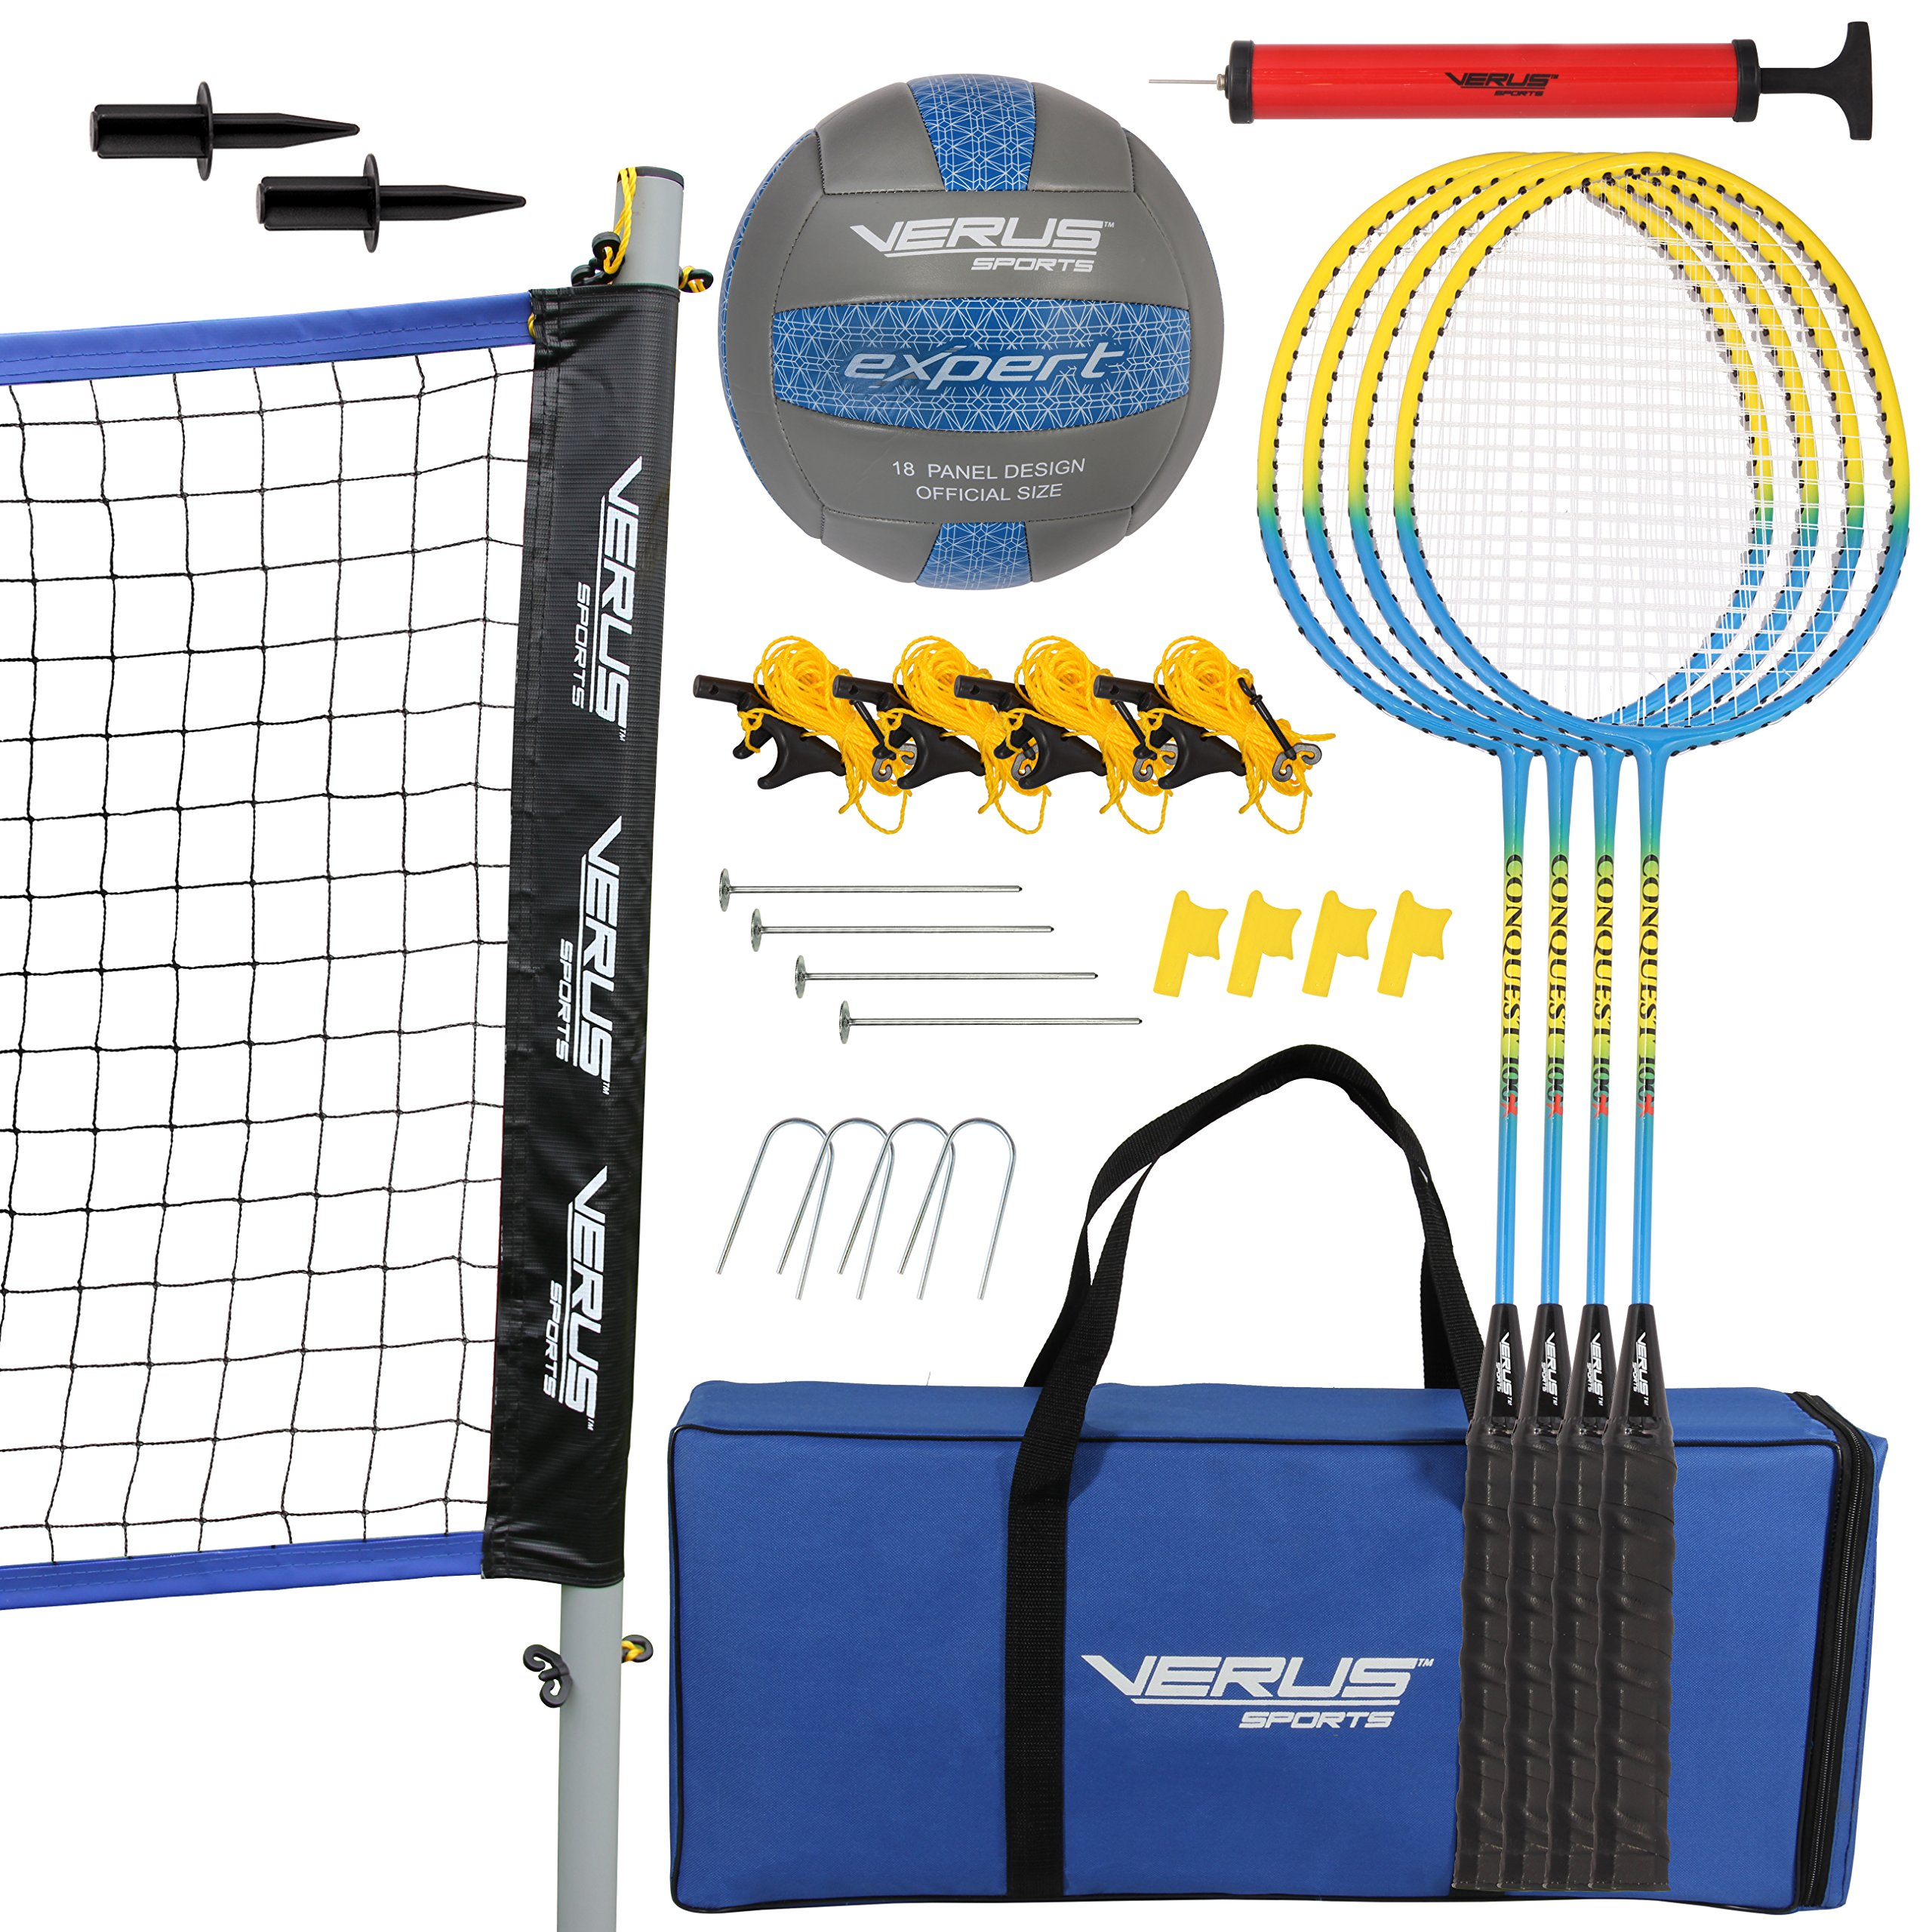 Verus Sports CS700 Expert 2-Game Volleyball/Badminton Sets, Black